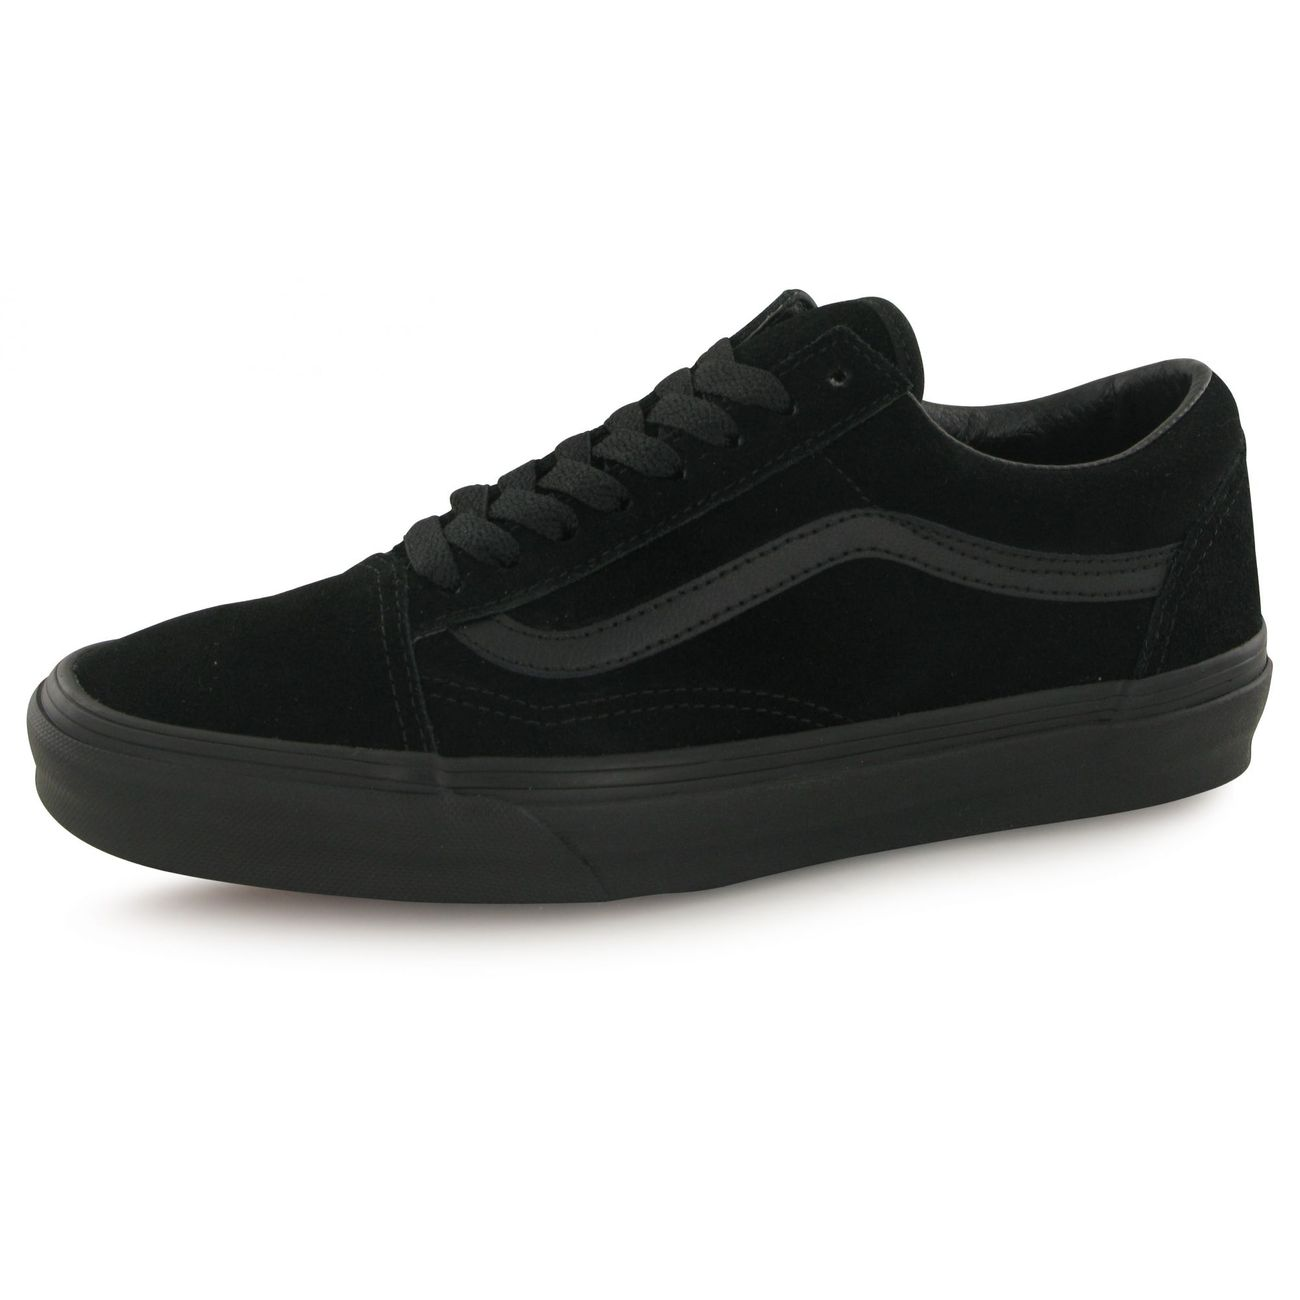 Vans Old Skool noir, baskets mode homme </p>